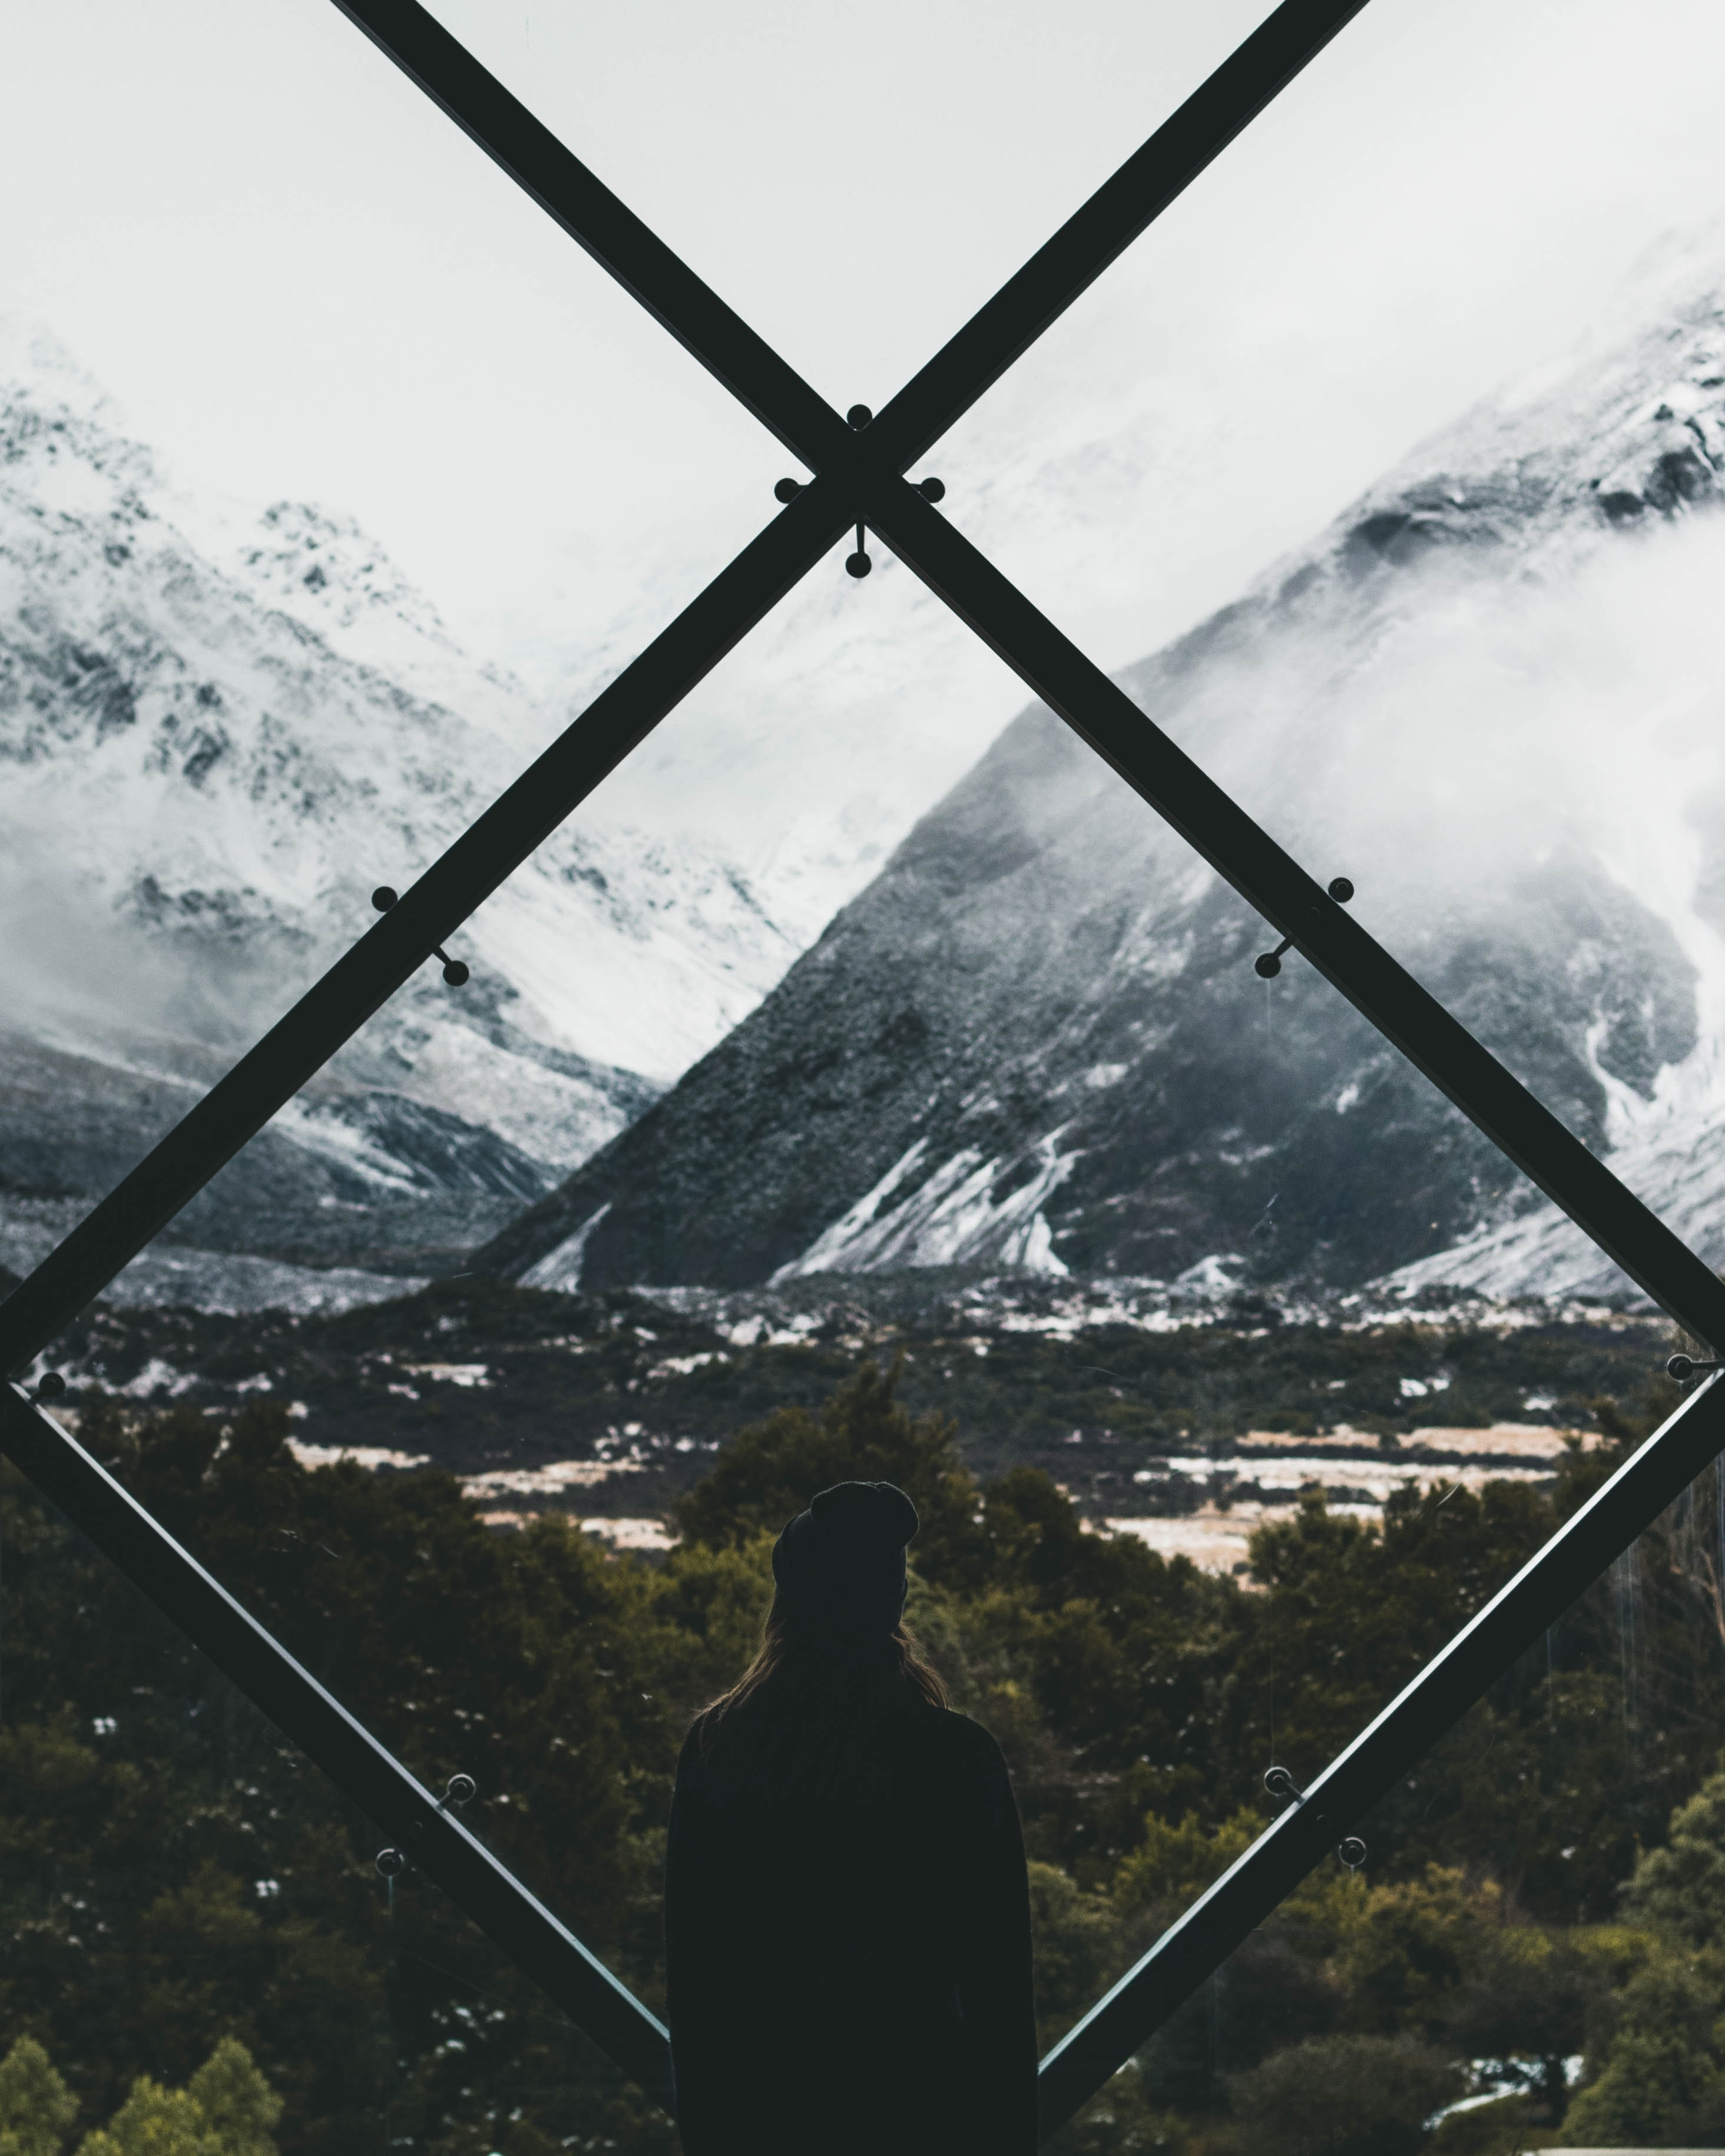 person standing on stained window looking through snow covered mountain